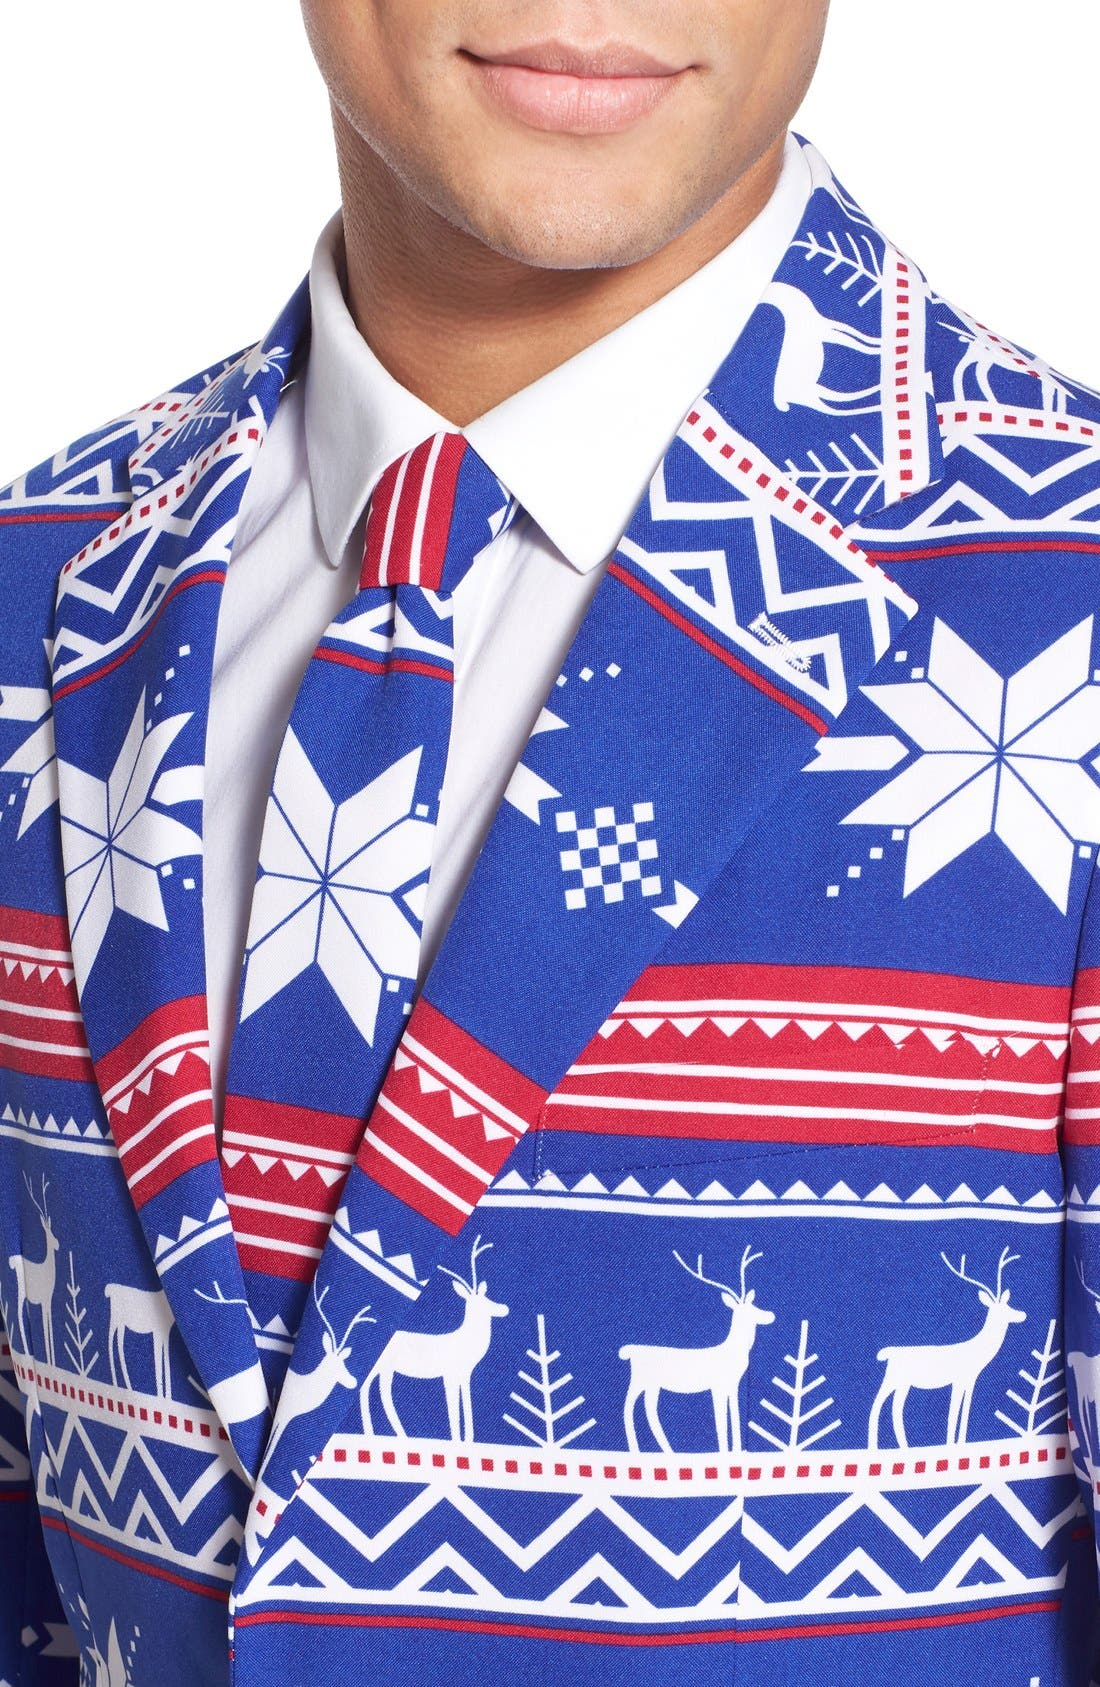 'Rudolph' Holiday Suit & Tie,                             Alternate thumbnail 6, color,                             Blue